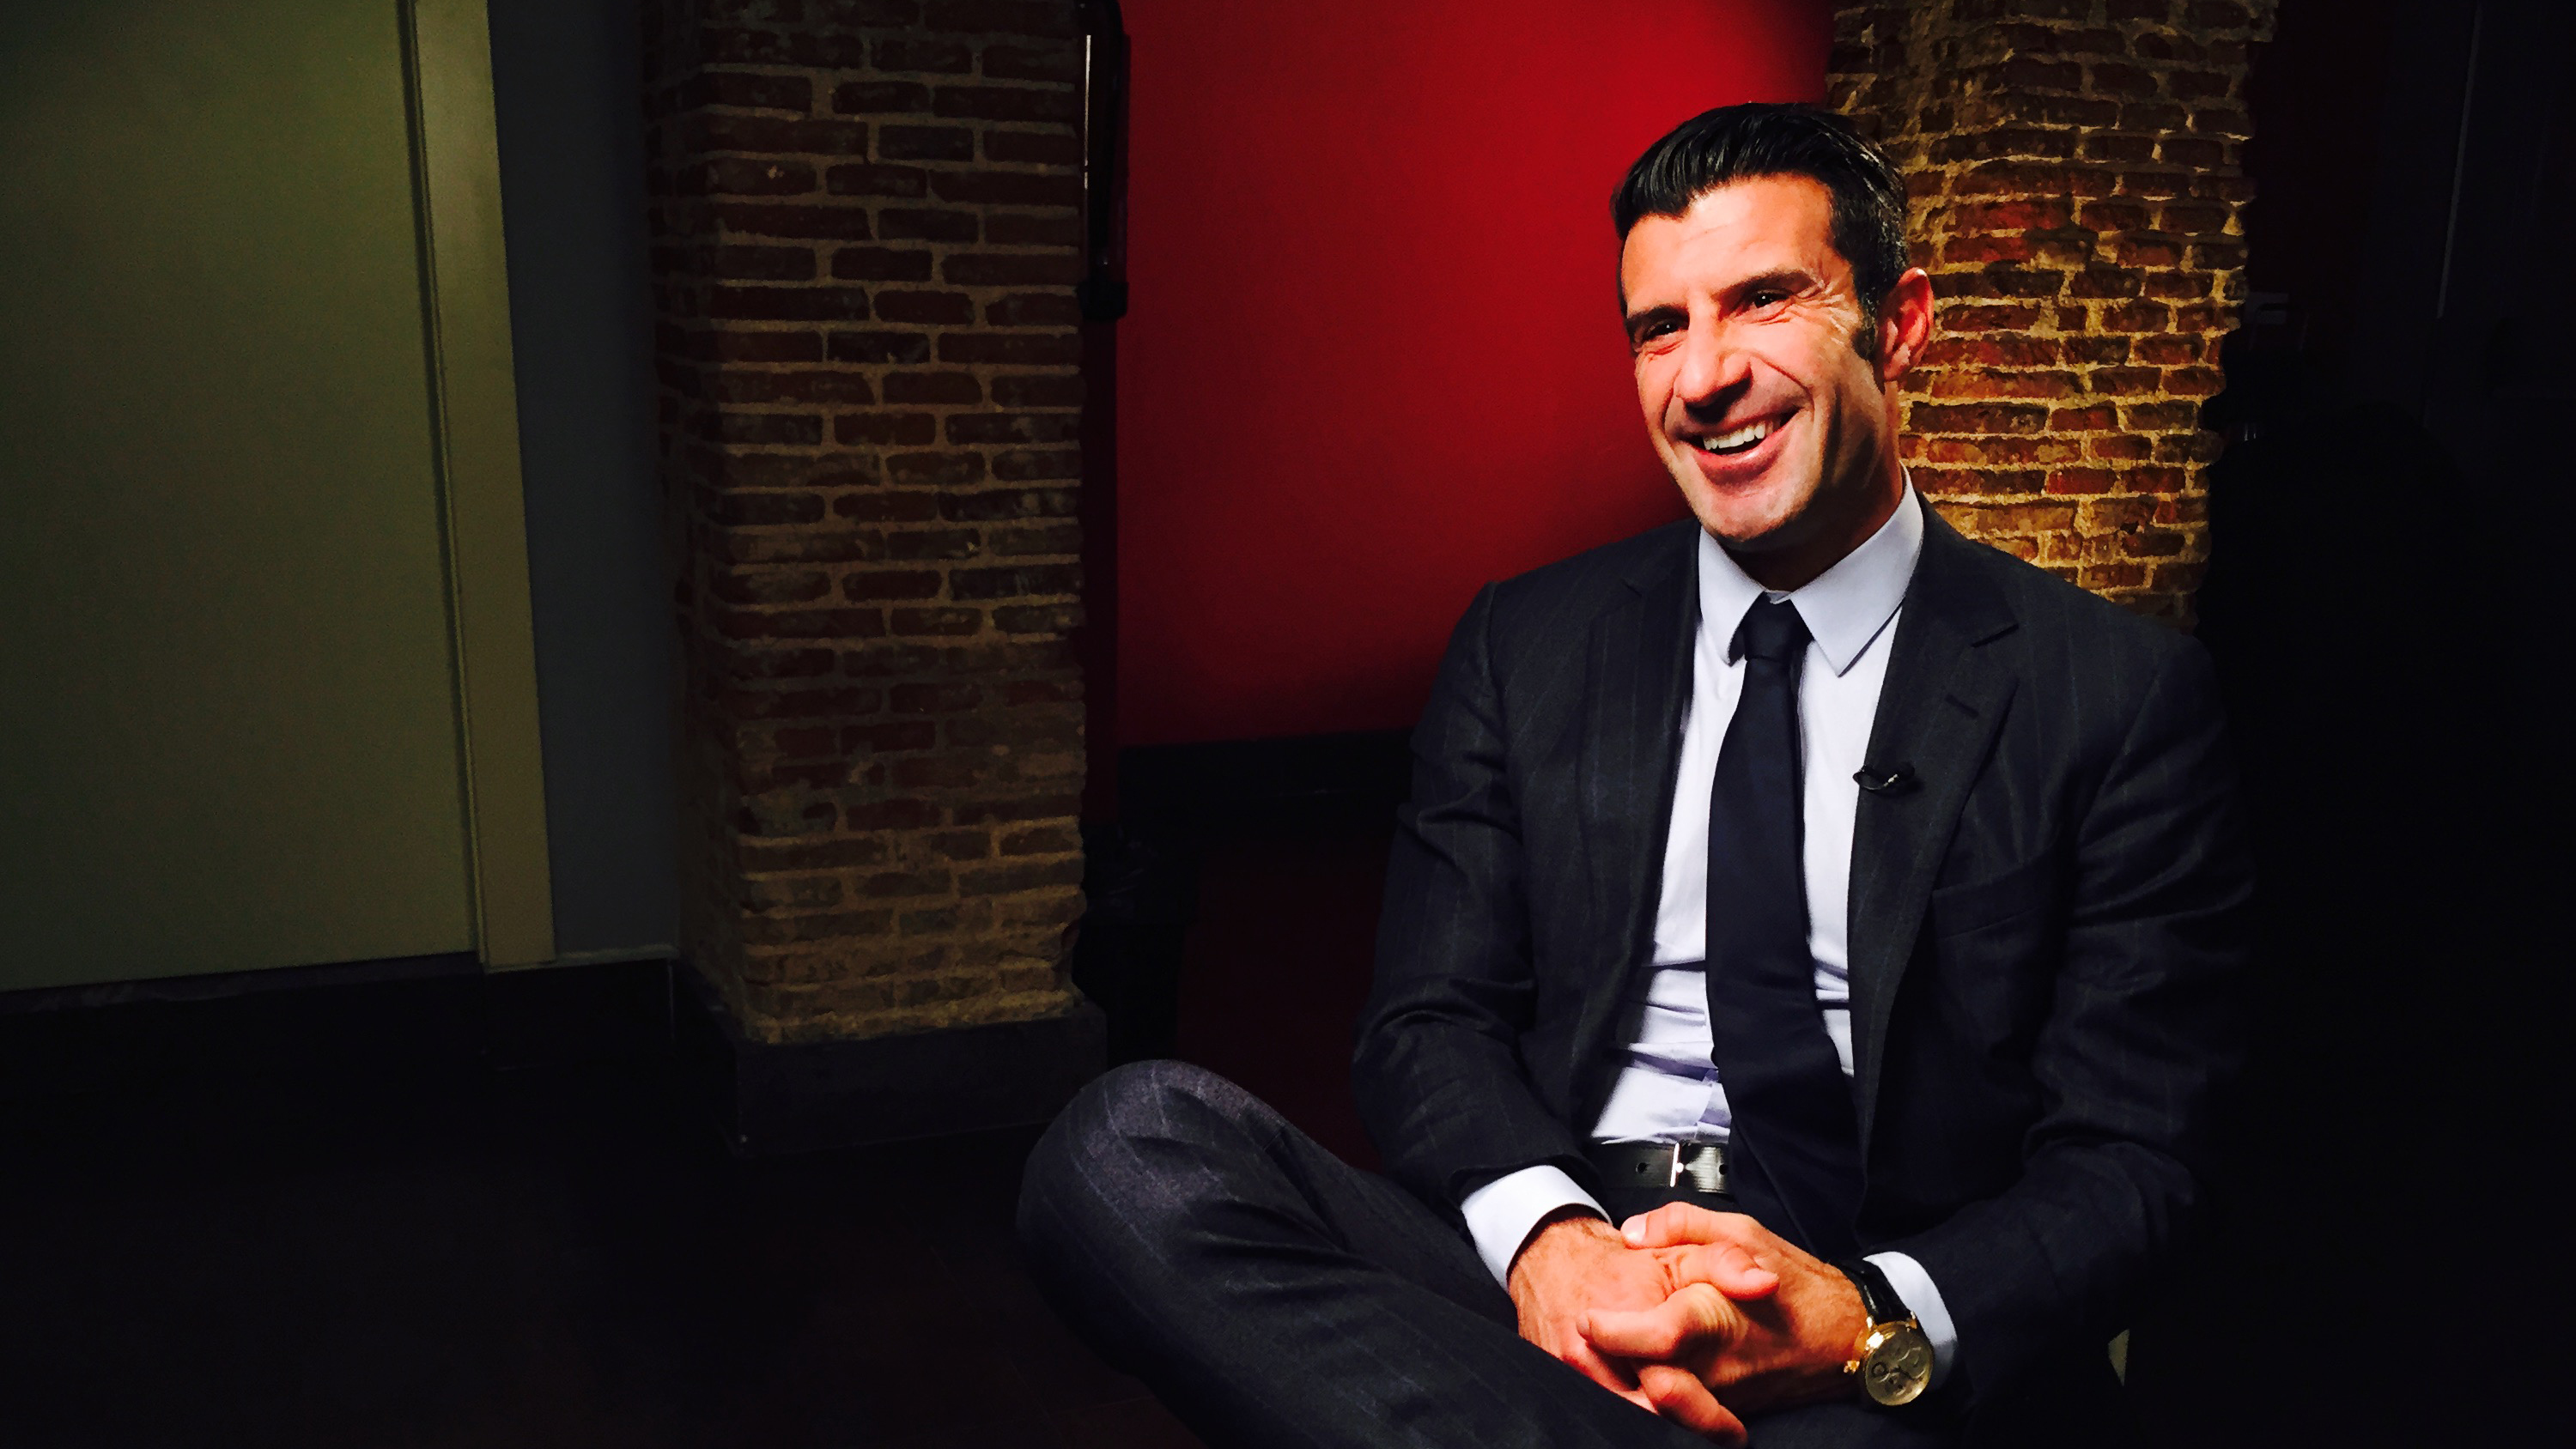 CNN Exclusive: Luis Figo joins race for FIFA presidency